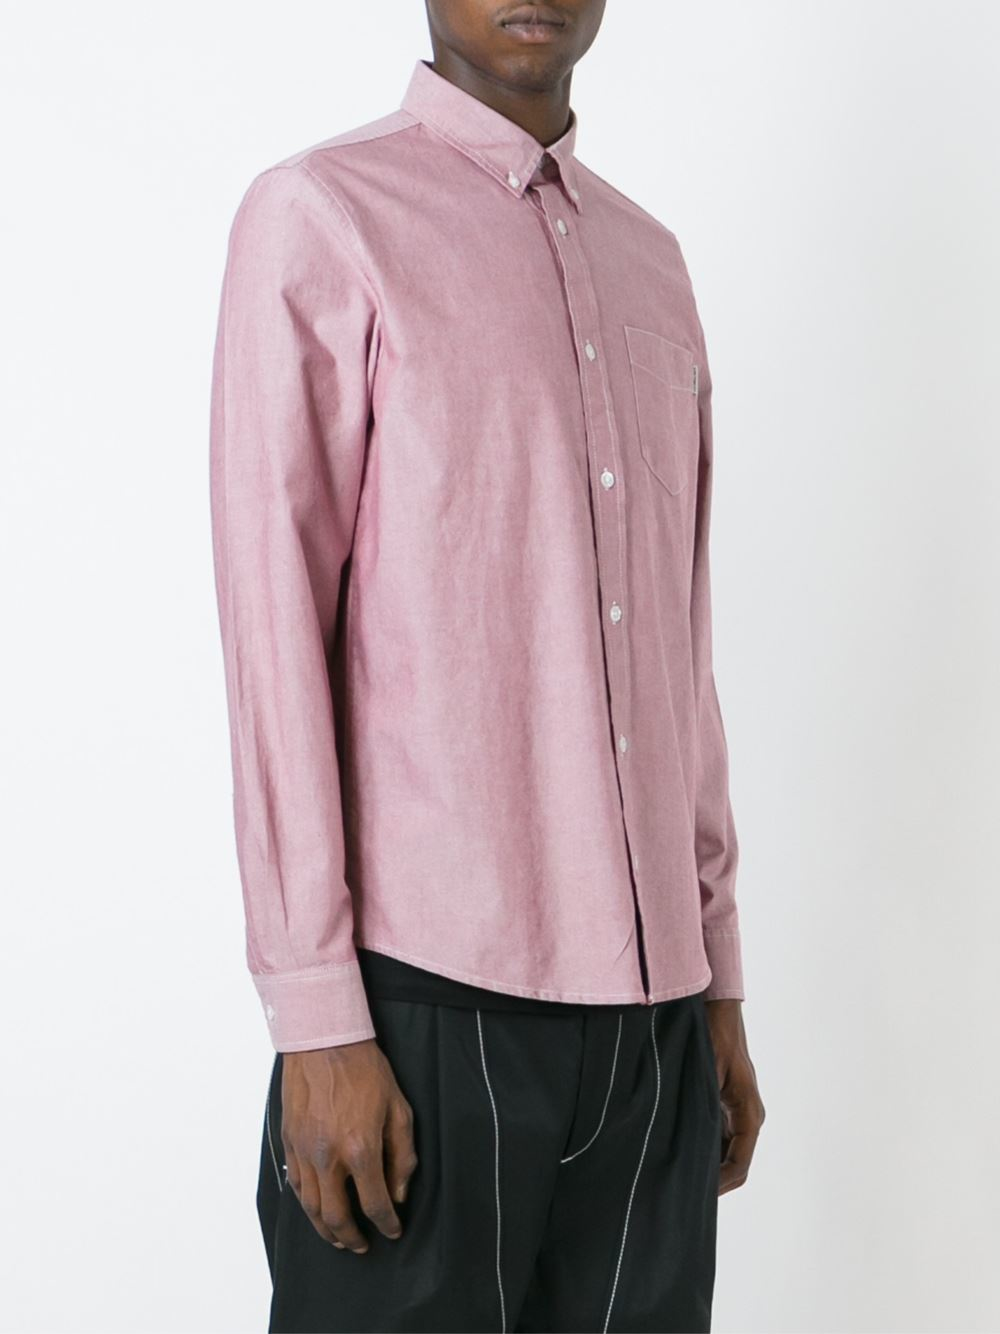 Carhartt oxford shirt in pink for men lyst for Pink oxford shirt men